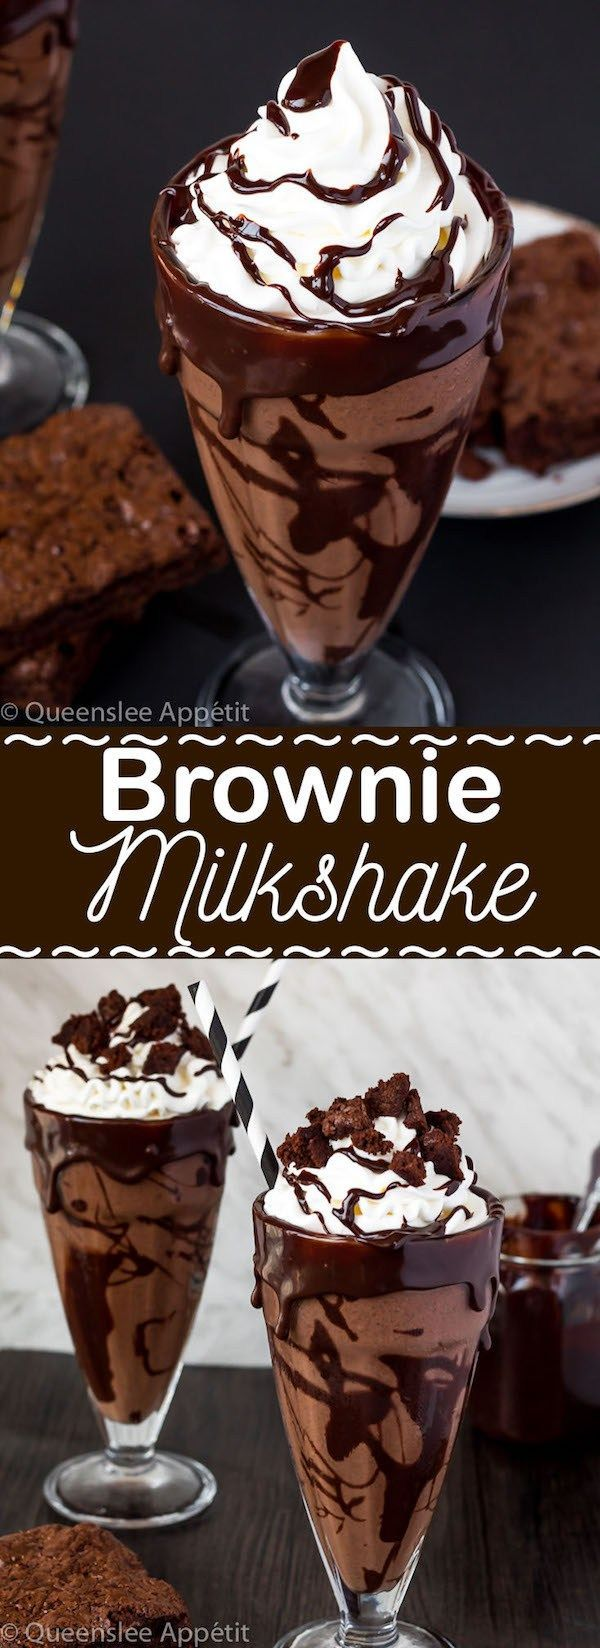 Brownie Milkshake This Brownie Milkshake is a super decadent treat every chocolate lover should taste at least once! Loaded with brownie chunks and decorated with ganache, this milkshake is packed with delicious chocolate flavour.